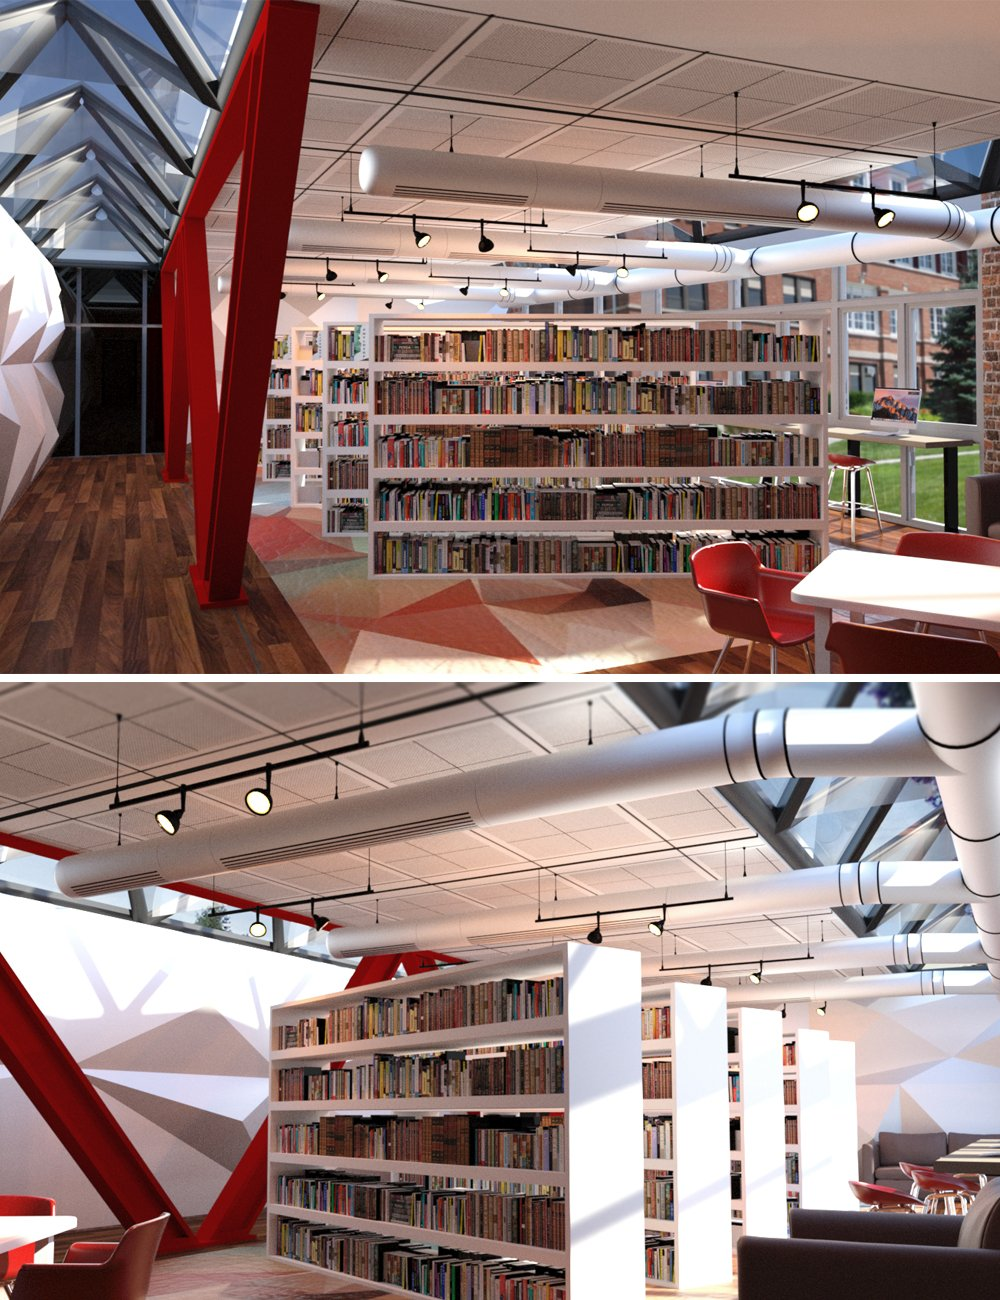 Campus Library by: Digitallab3D, 3D Models by Daz 3D